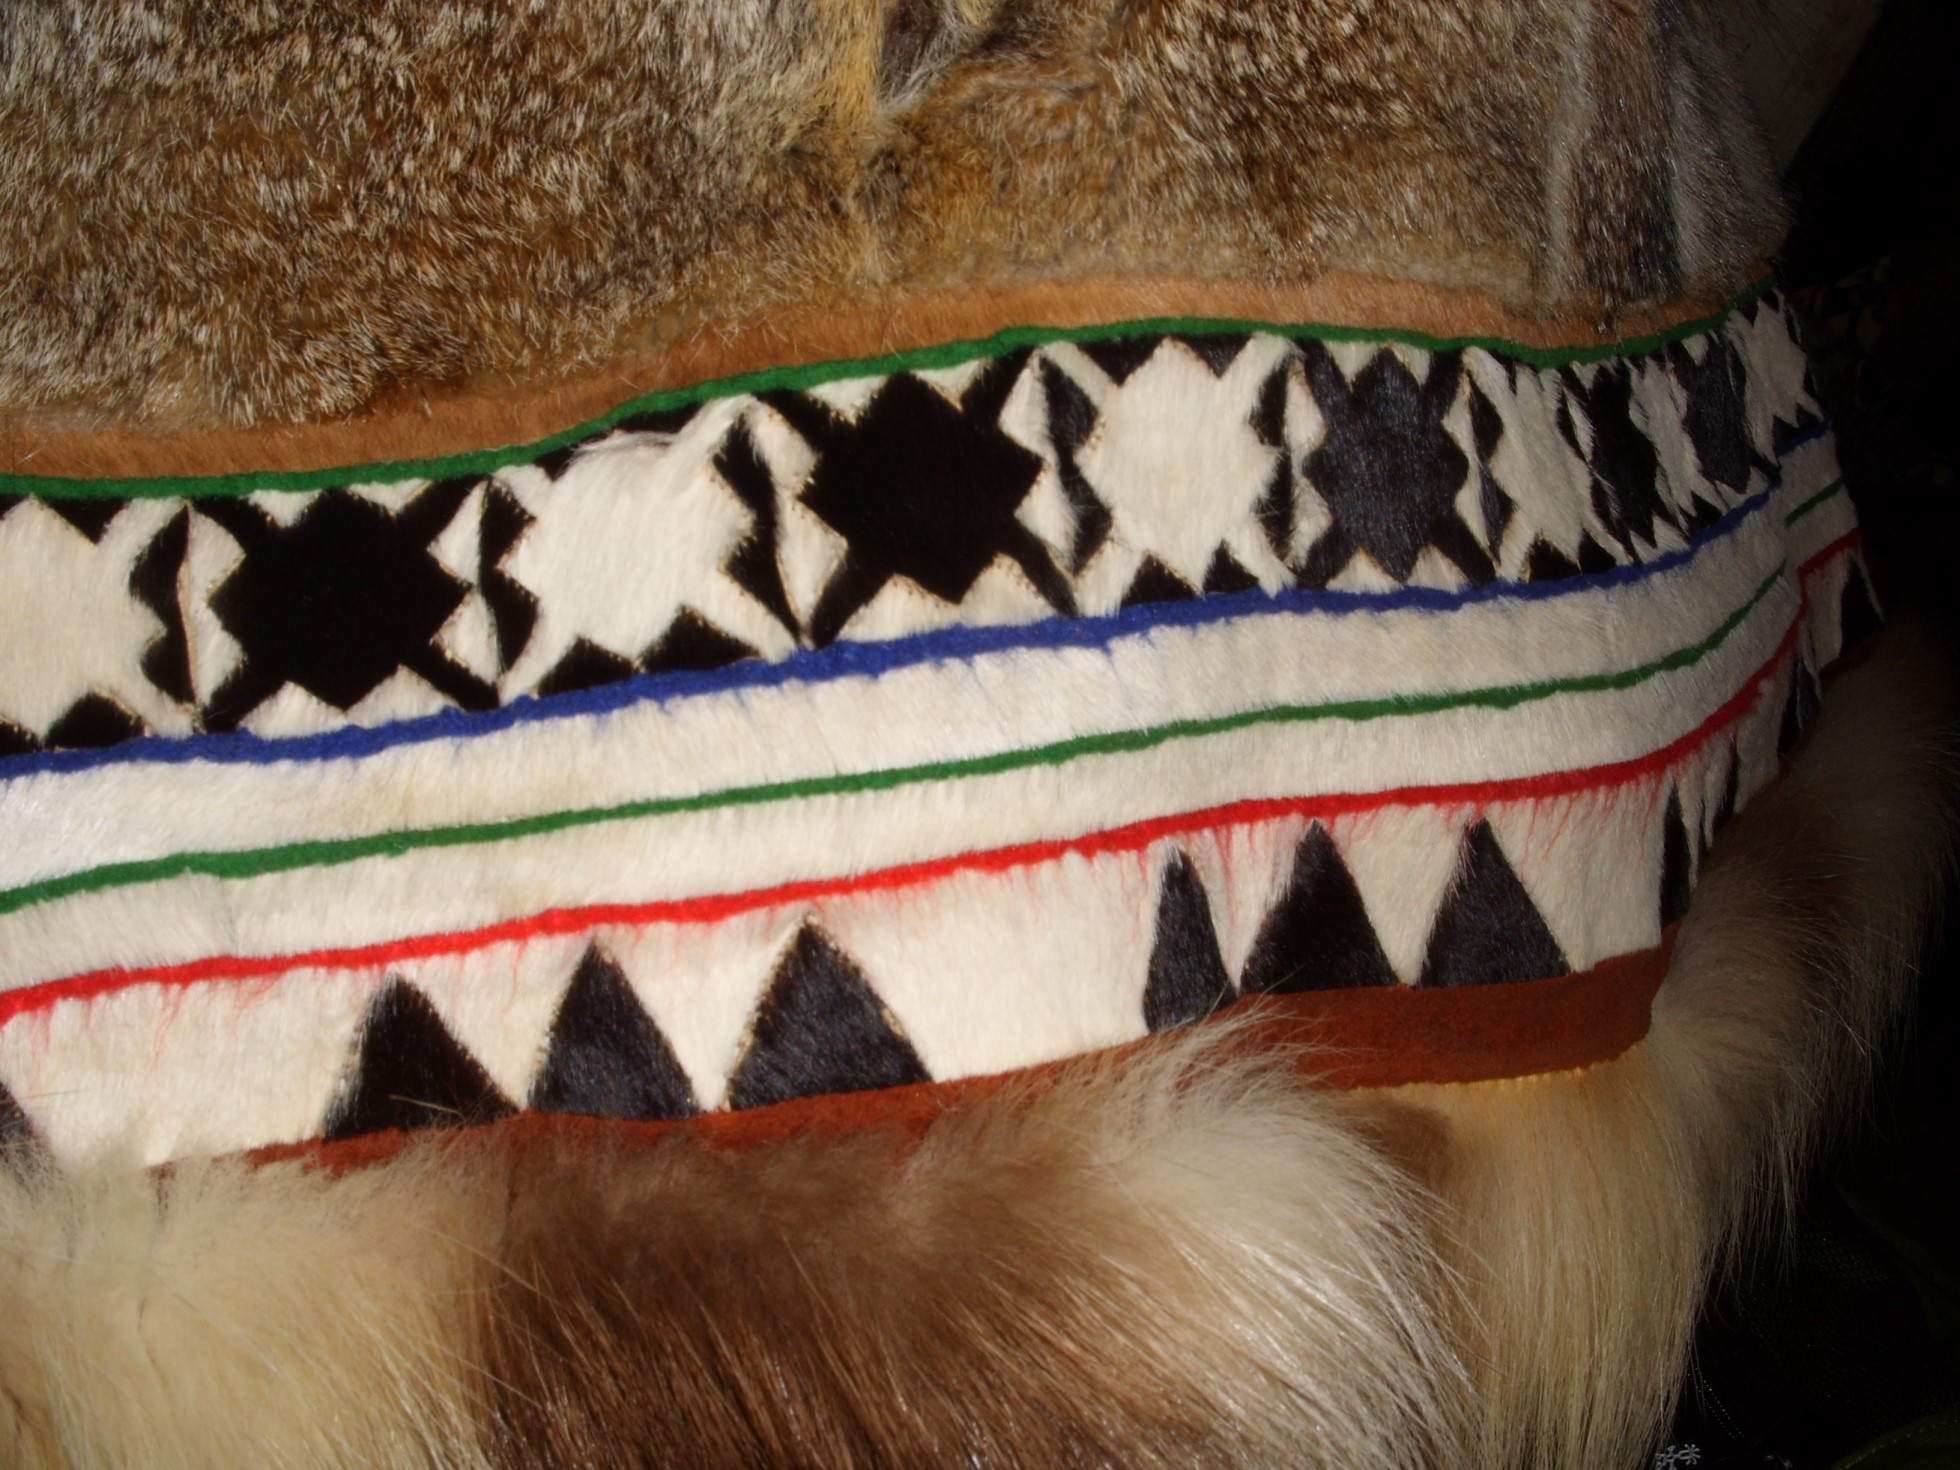 Detail of a parka trim in black and white. The motif is of triangle and star shapes. There are thin horizonal lines of blue, green and red.